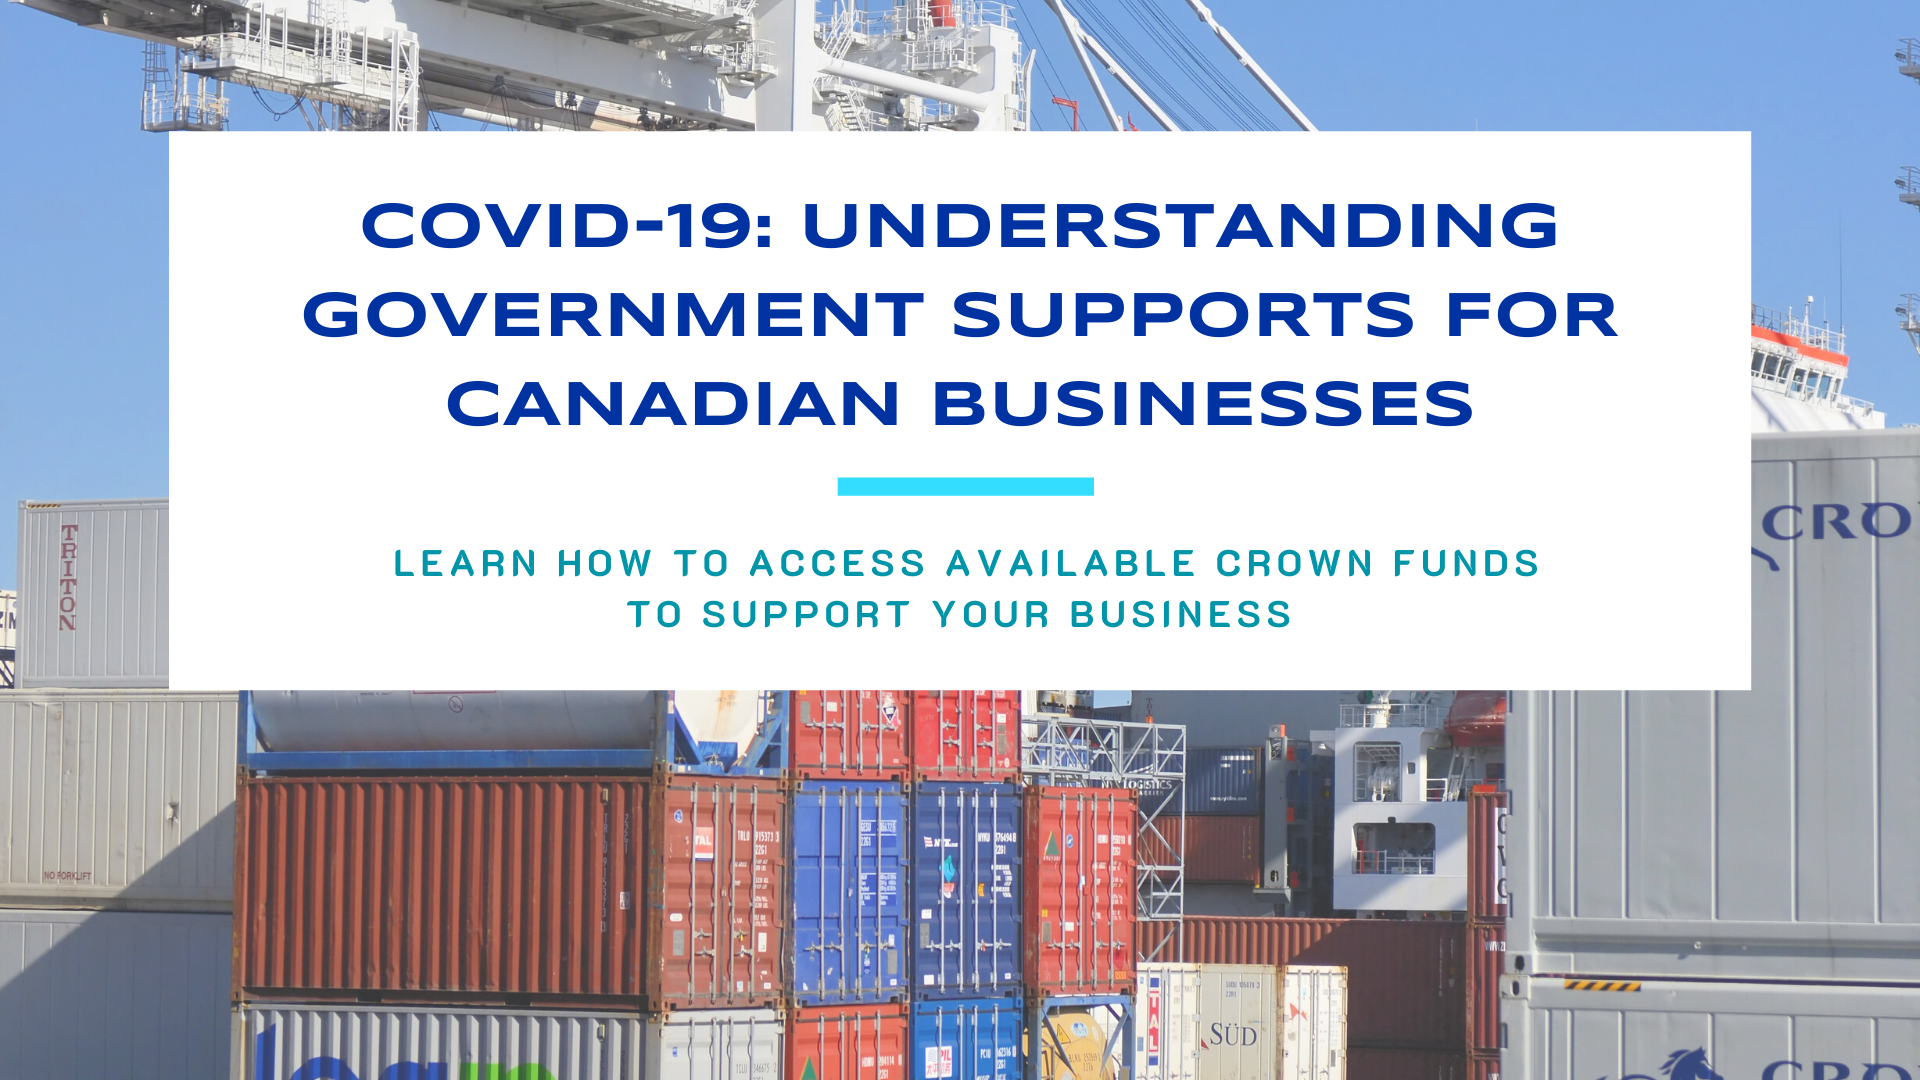 COVID-19: UNDERSTANDING GOVERNMENT SUPPORTS FOR CANADIAN BUSINESSES